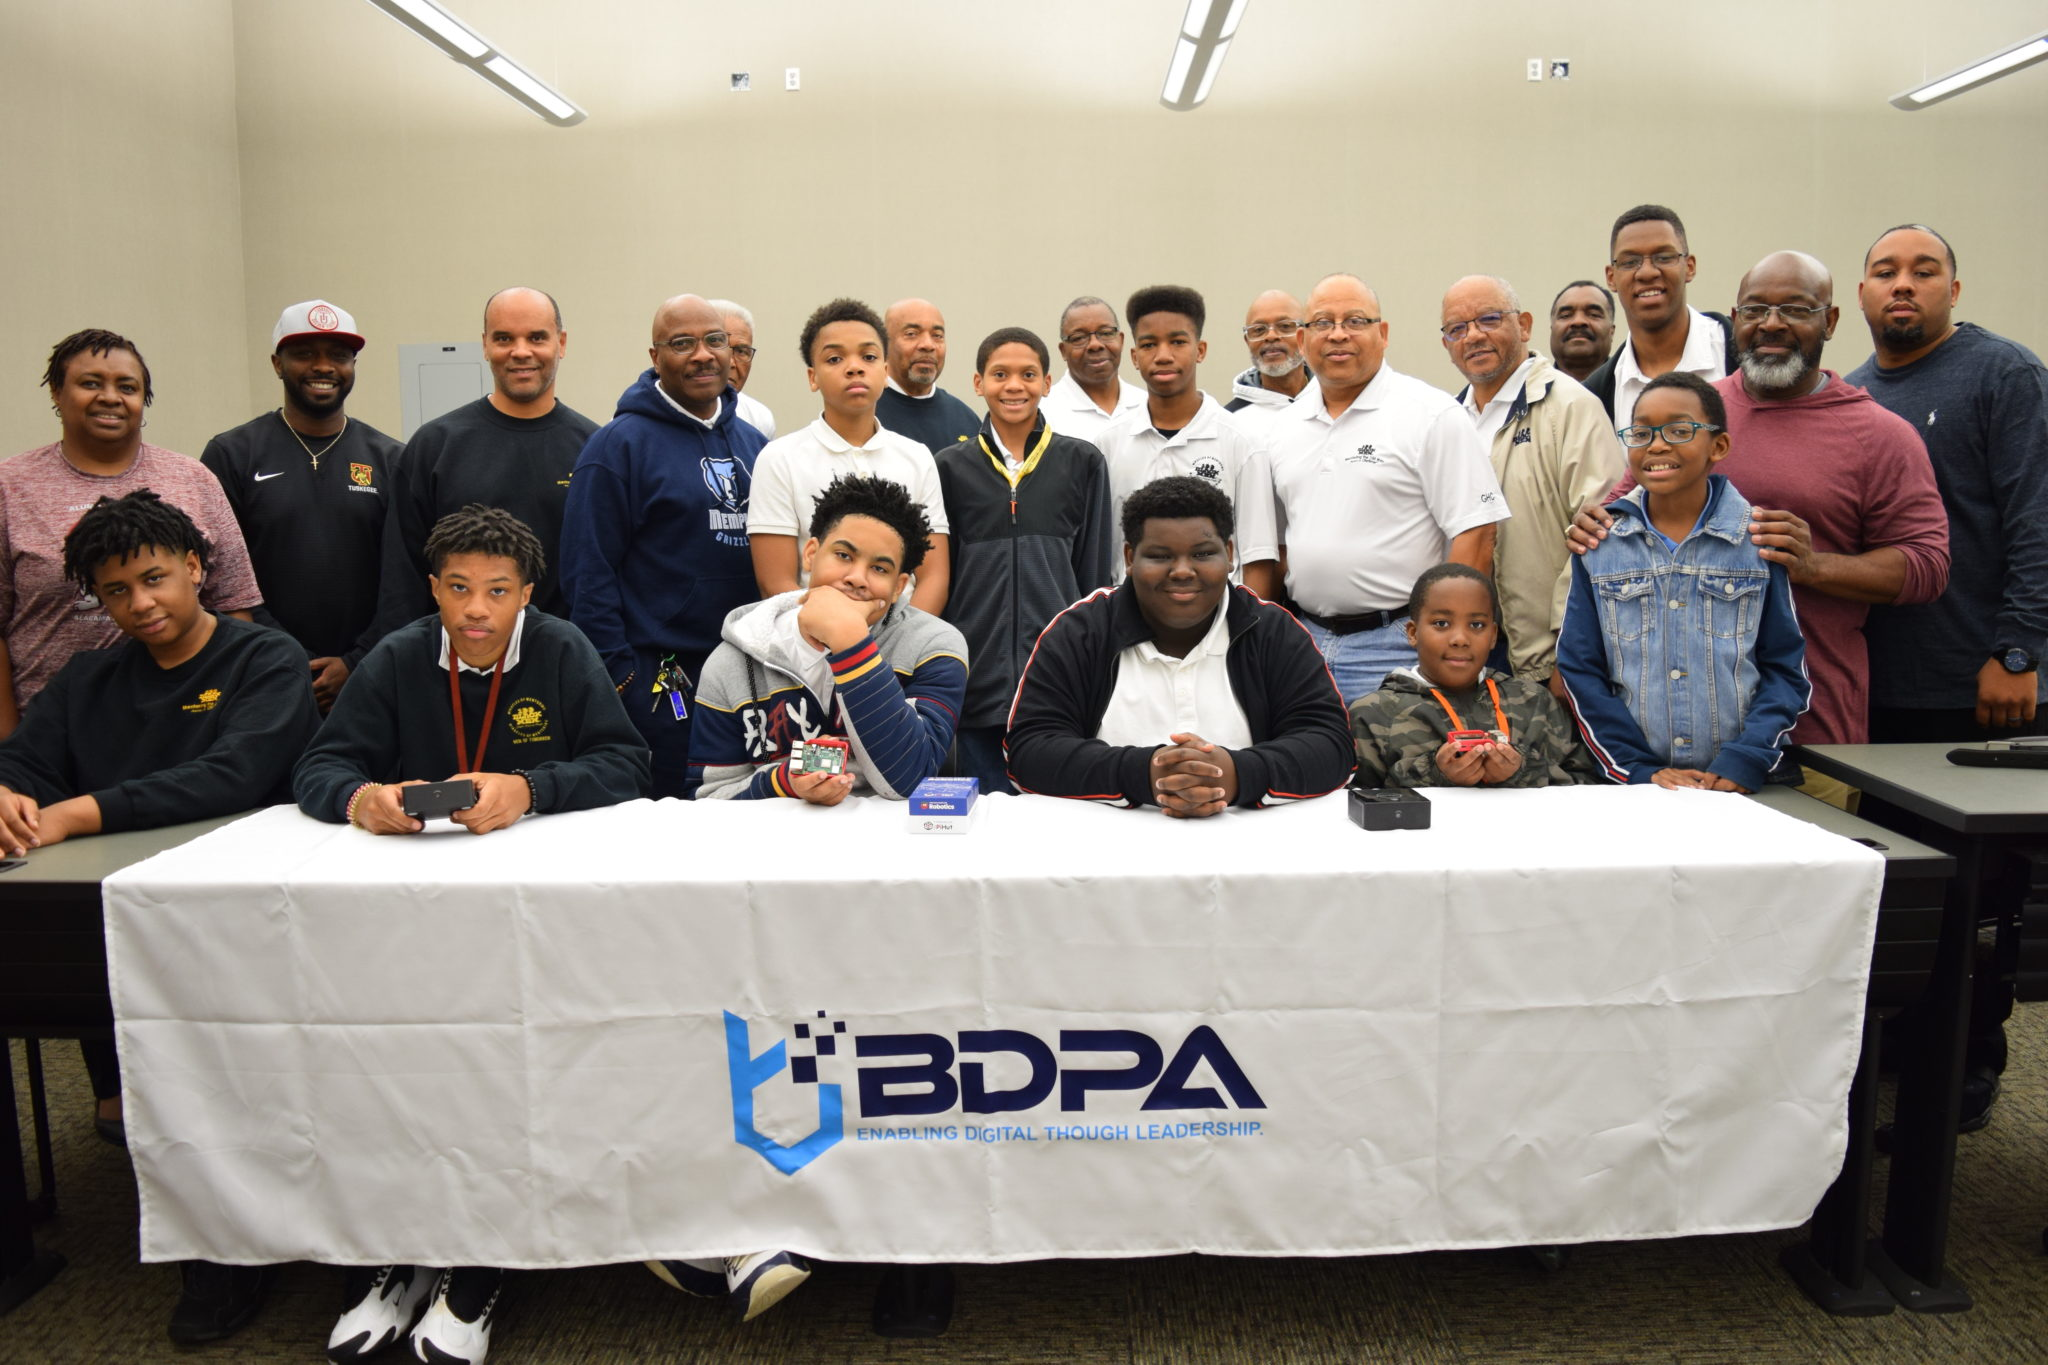 BDPAHSV and 100 Black Men partner to train the Men of Tomorrow